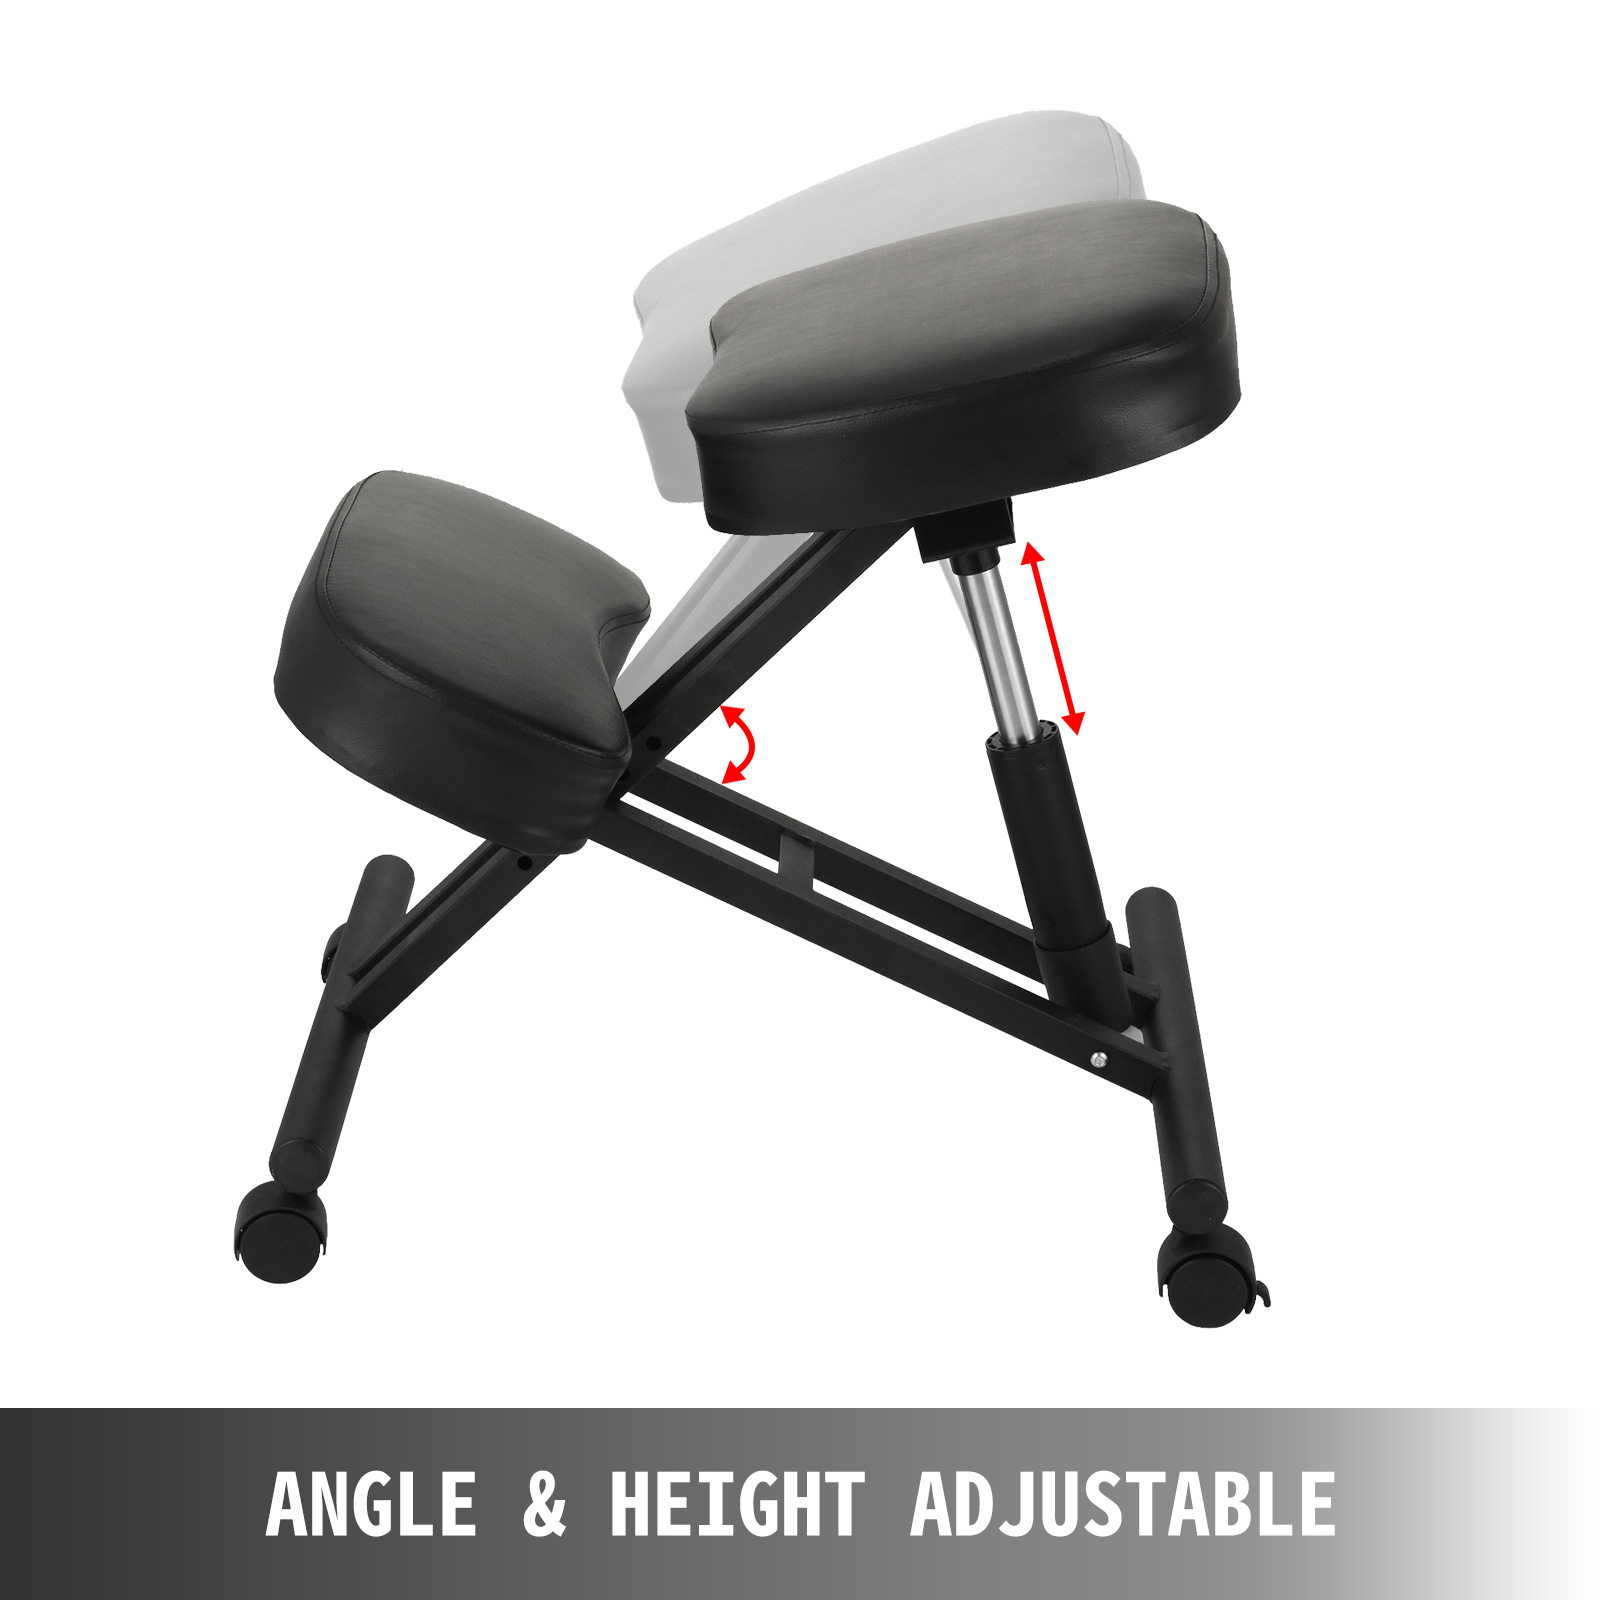 kneeling chair m100 4 - VEVOR Ergonomic Kneeling Chair Adjustable Kneeling Stool Thick Comfortable Cushions for Office Home Balancing Back Body Shaping